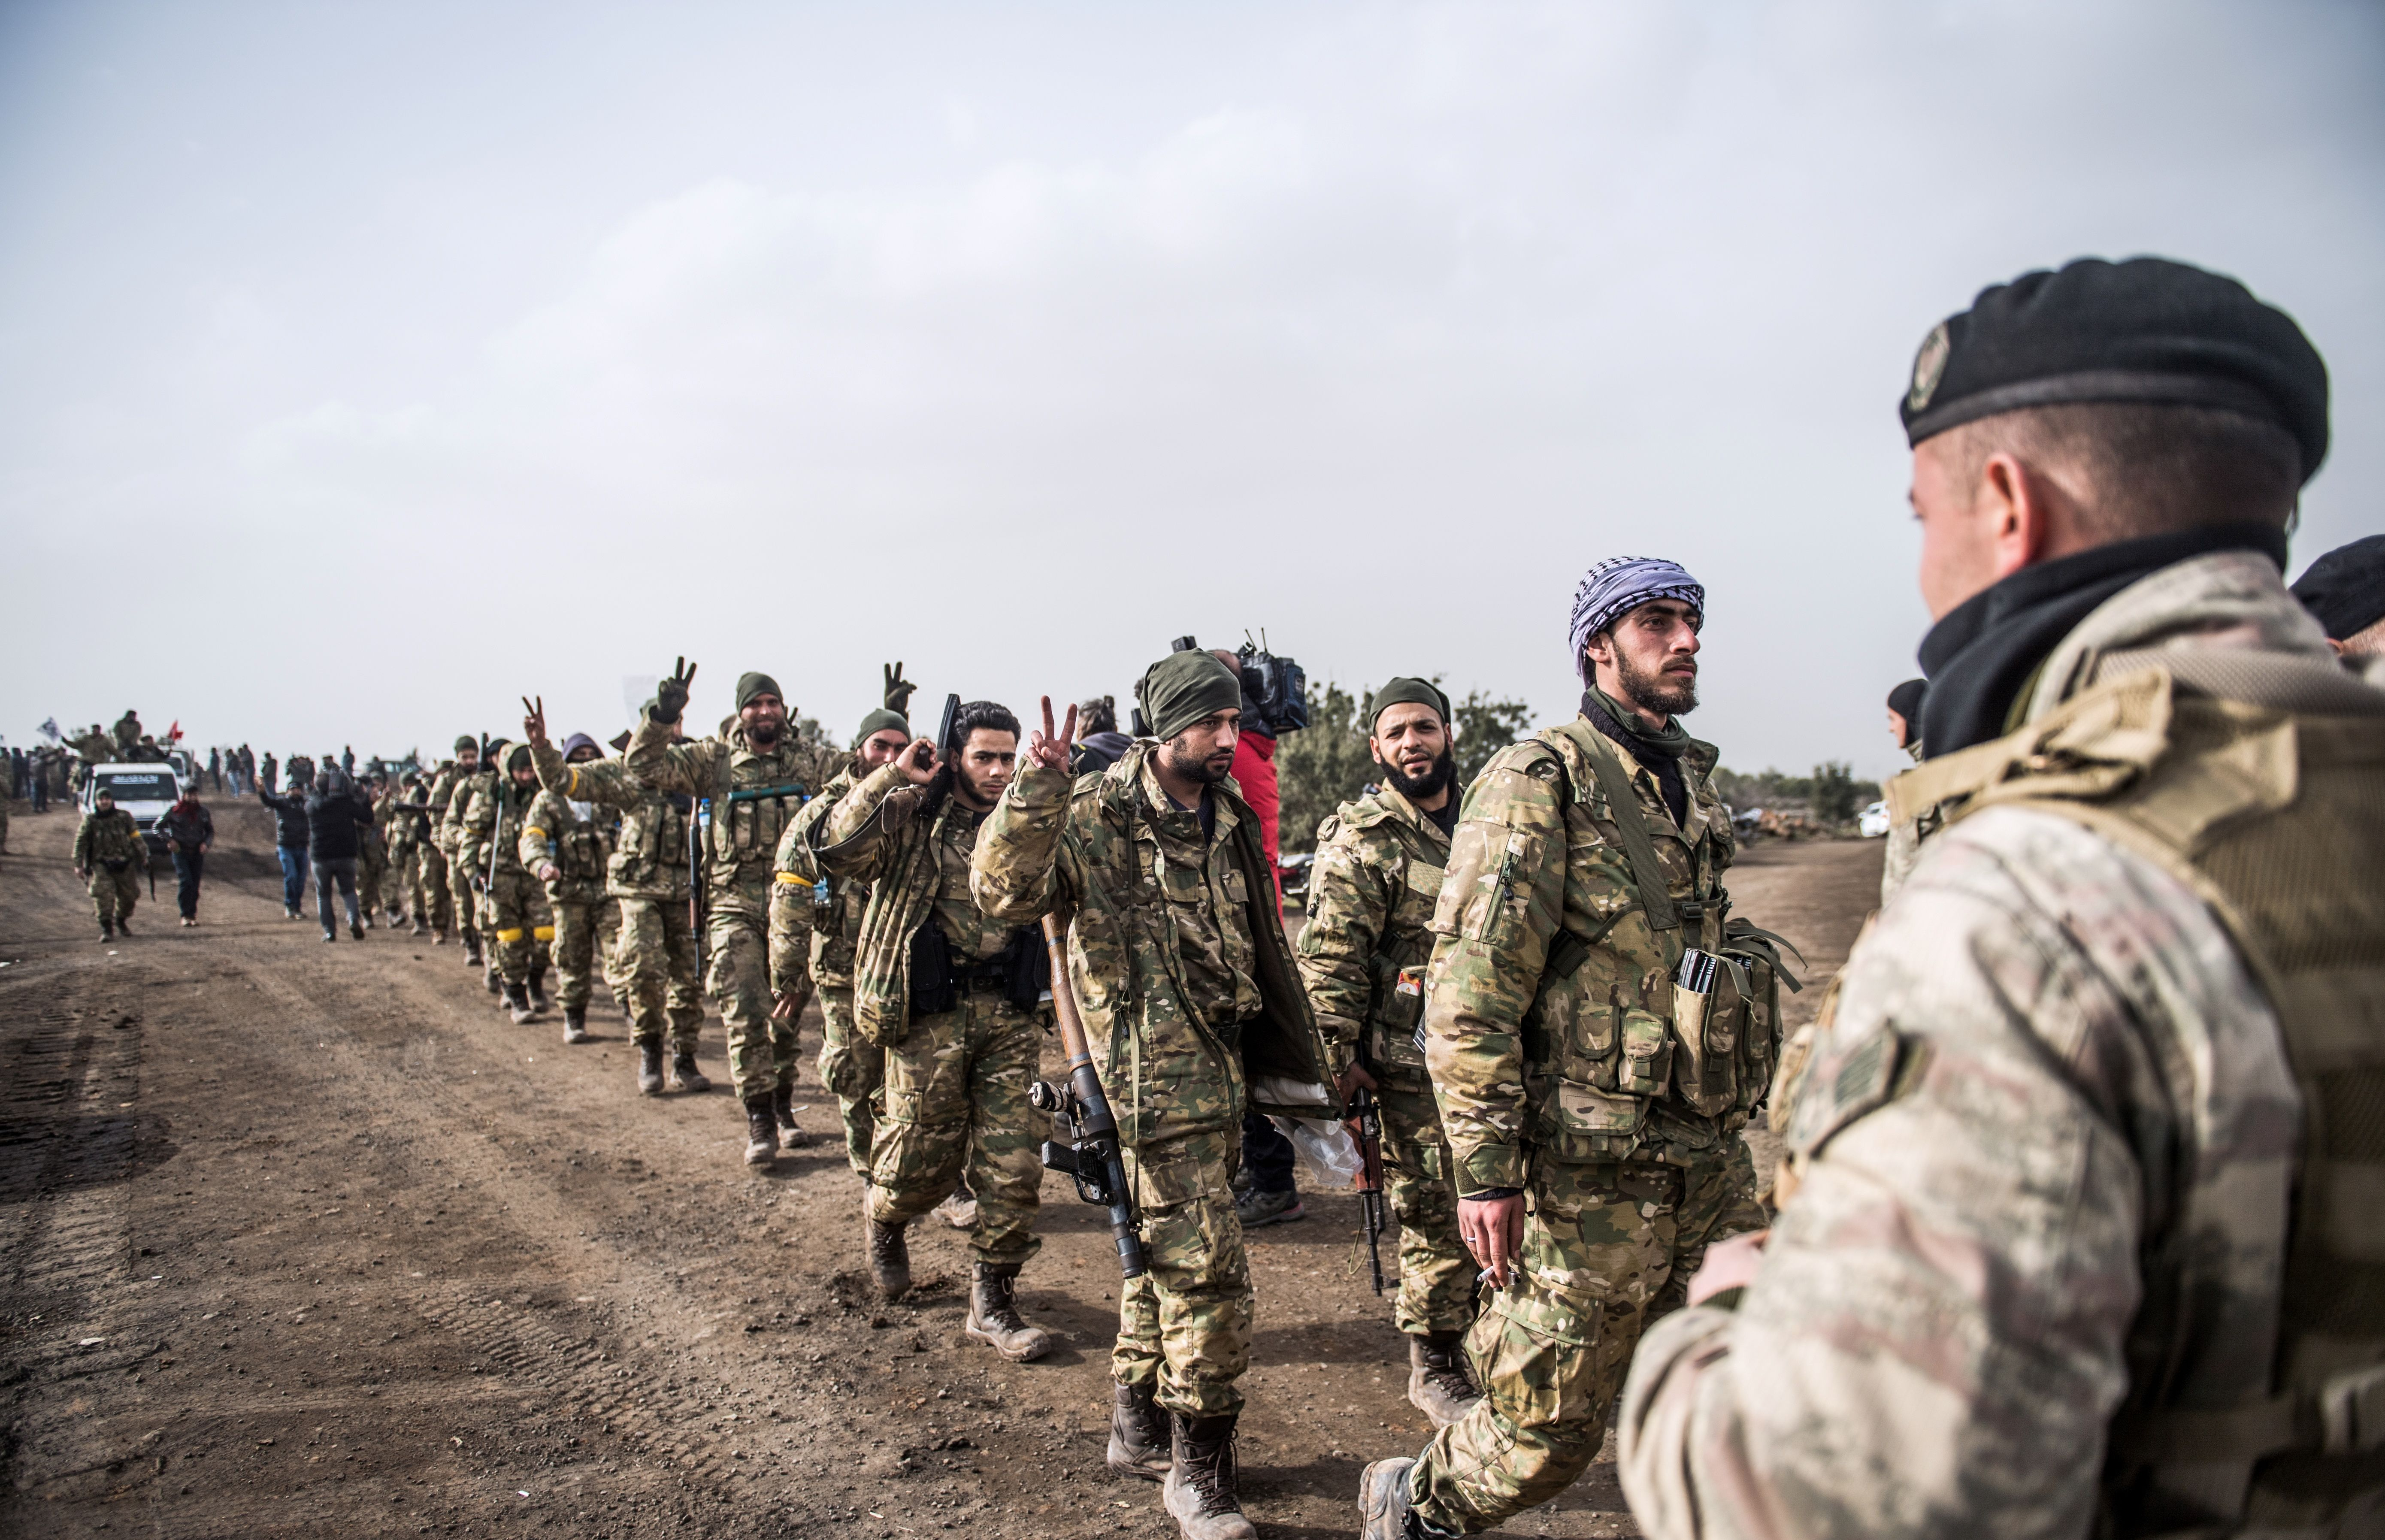 Syrian opposition fighters walk through Syria in front of Turkish troops near the Syrian border at Hassa, Hatay province, on January 22, 2018. (Photo credit should read BULENT KILIC/AFP/Getty Images)